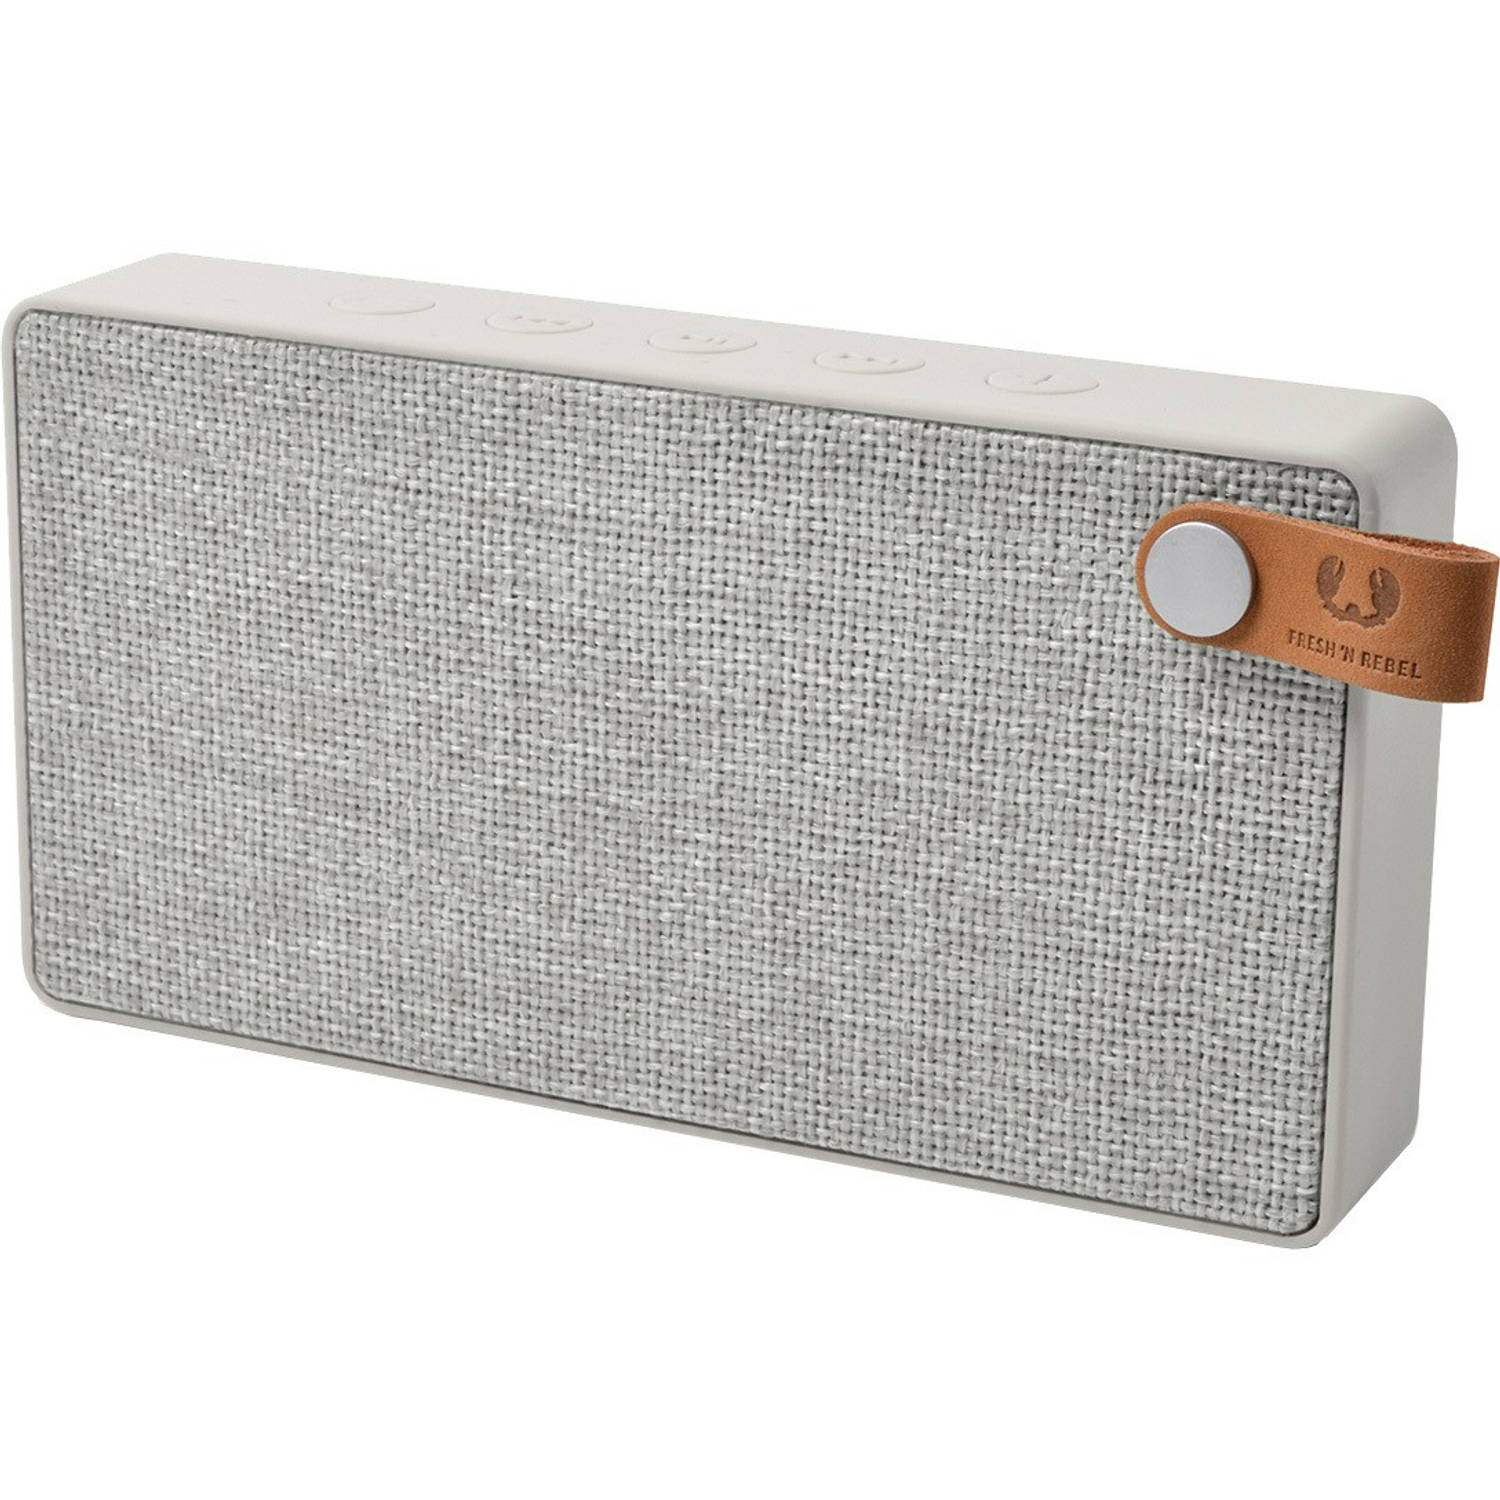 Rockbox Slice Fabriq Edition Cloud